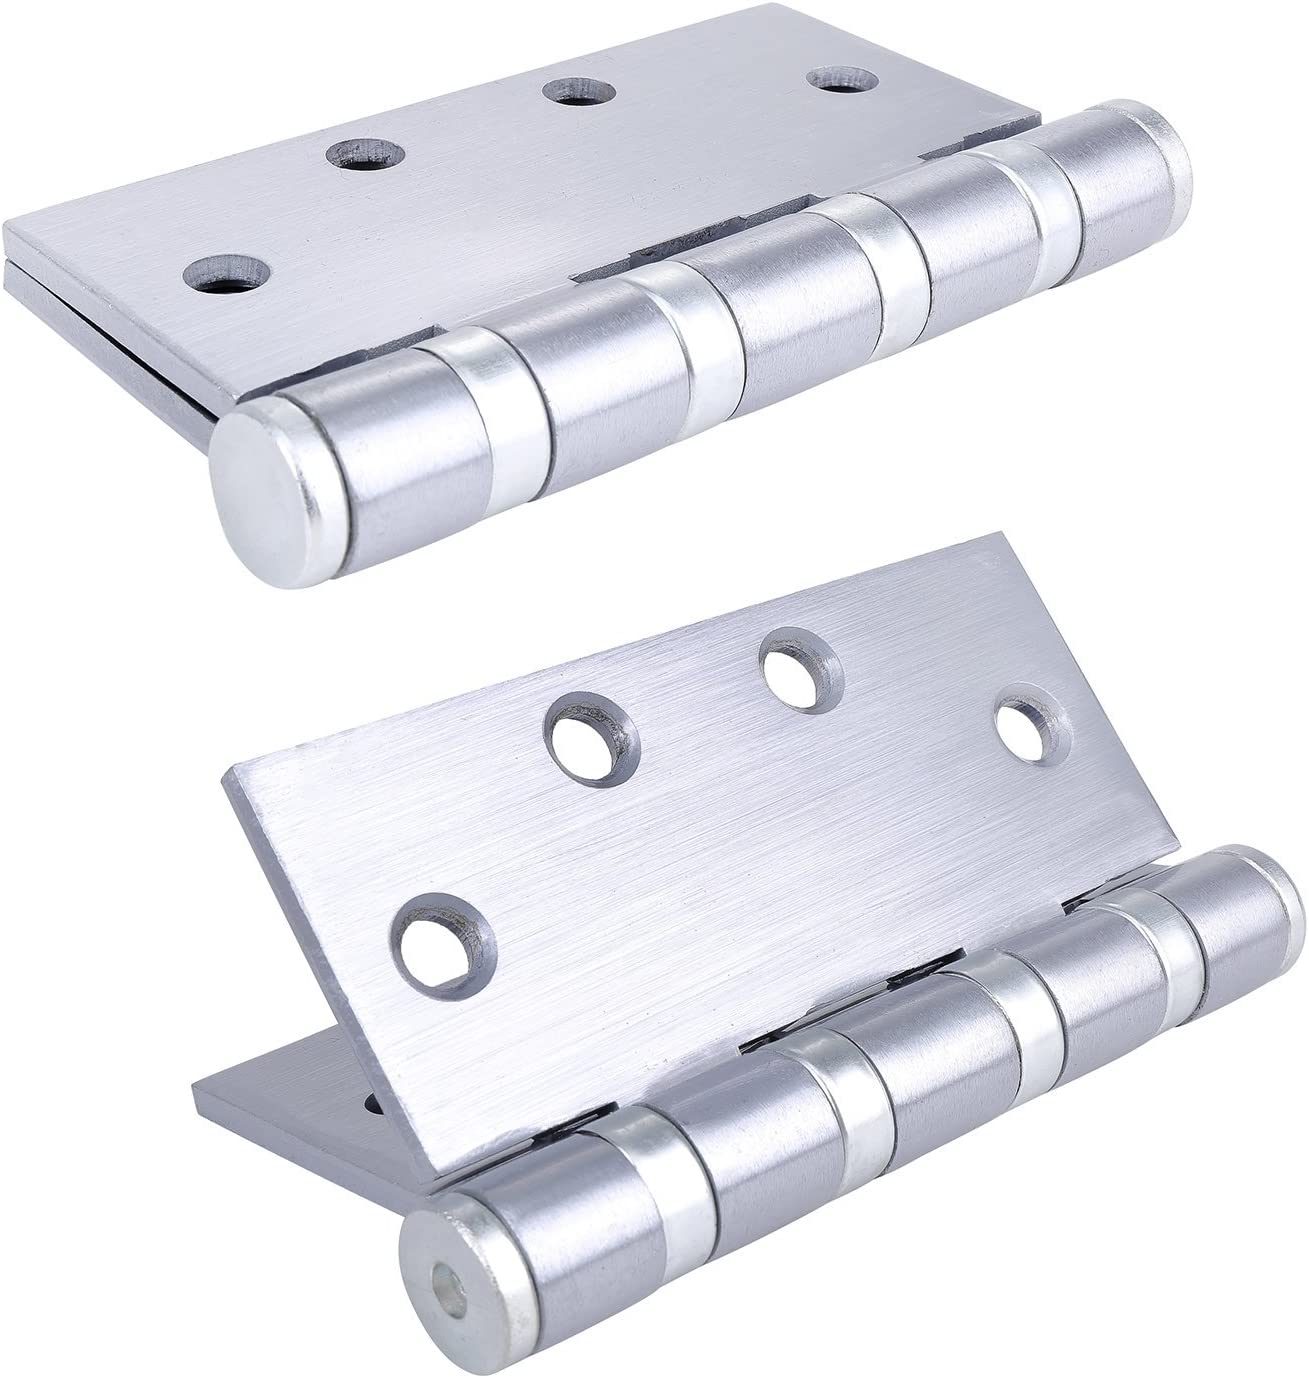 Pack of 1 Commercial Door Hinge Stainless Steel Finish by Dependable Direct 4 Bearing Heavy Weight 4.5 Inch